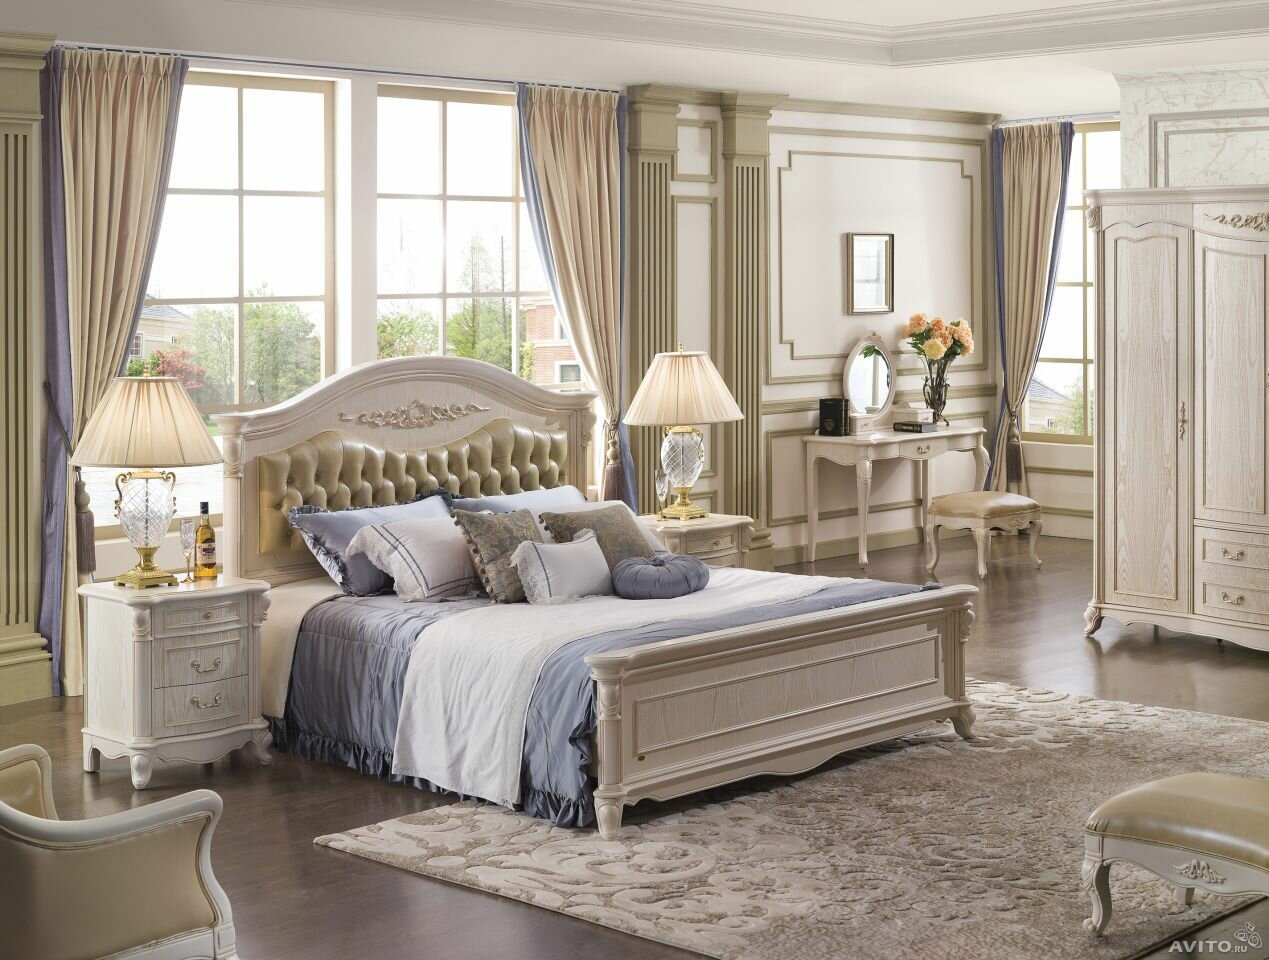 15 world 39 s most beautiful bedrooms mostbeautifulthings for Stunning bedrooms